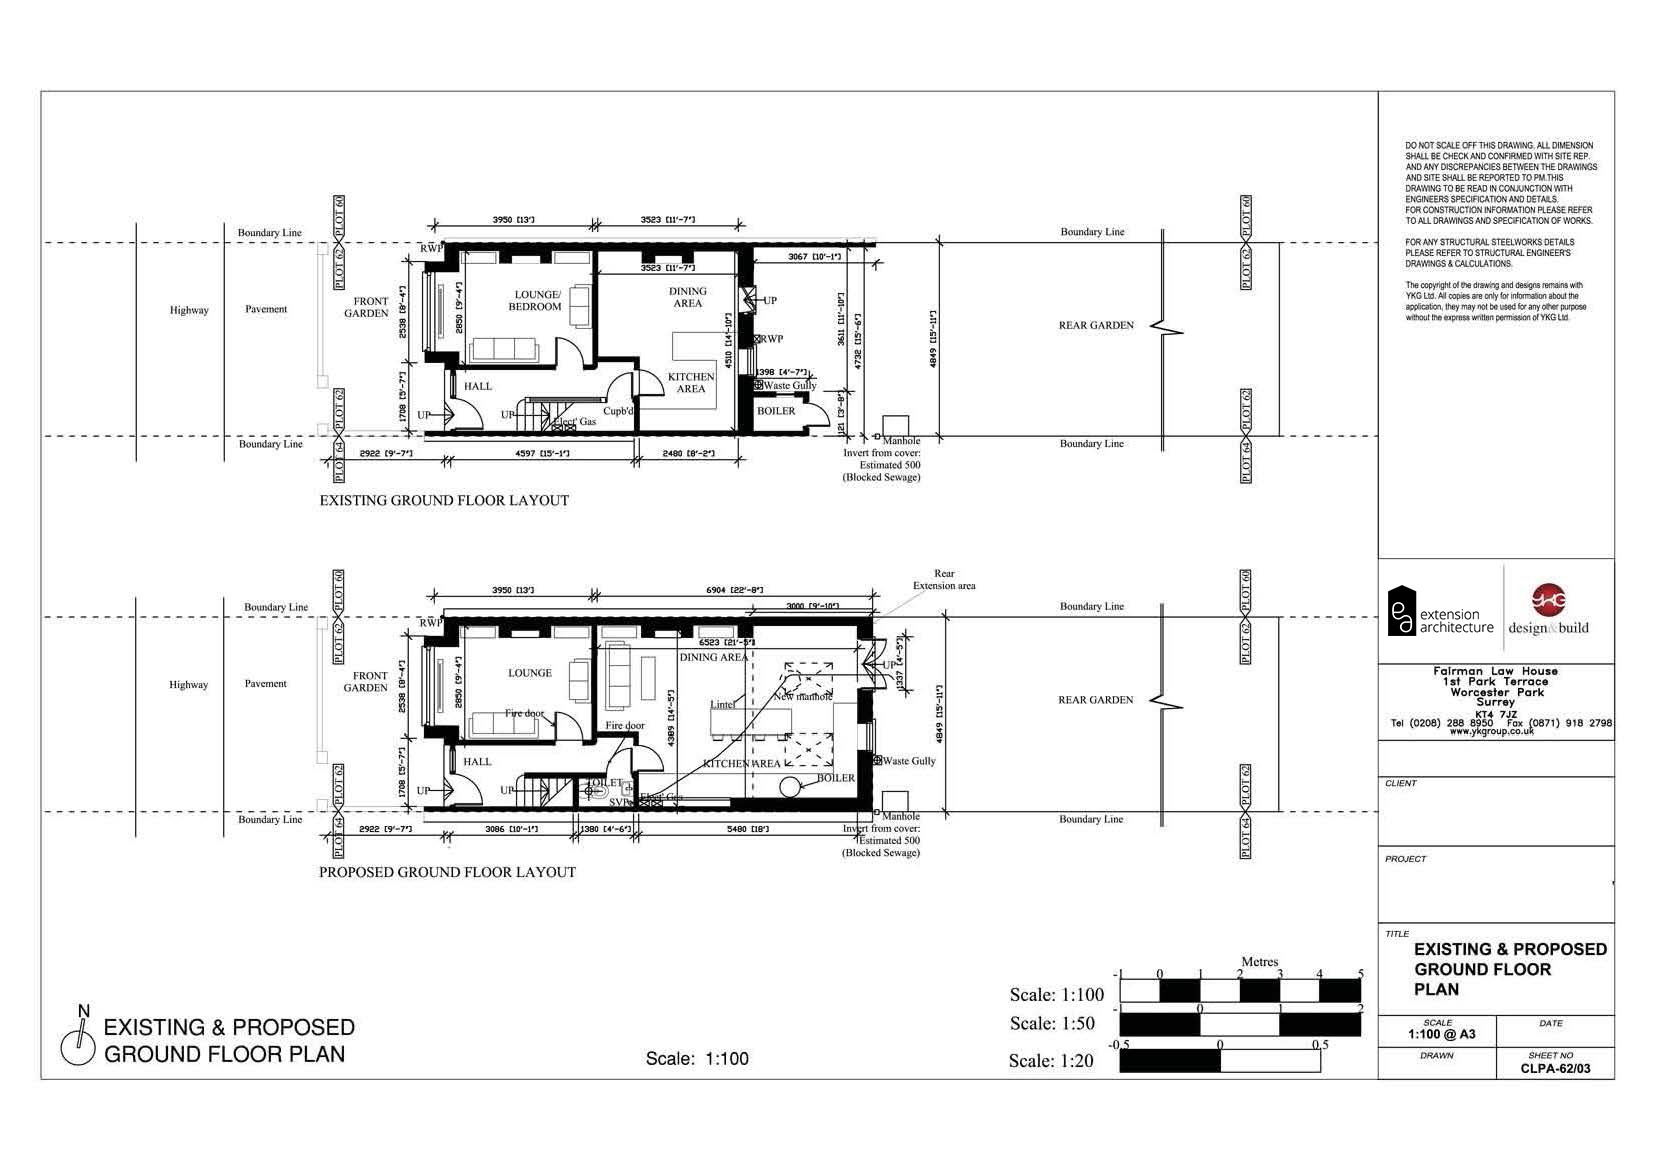 residentail single story rear drawings for planning in Durham